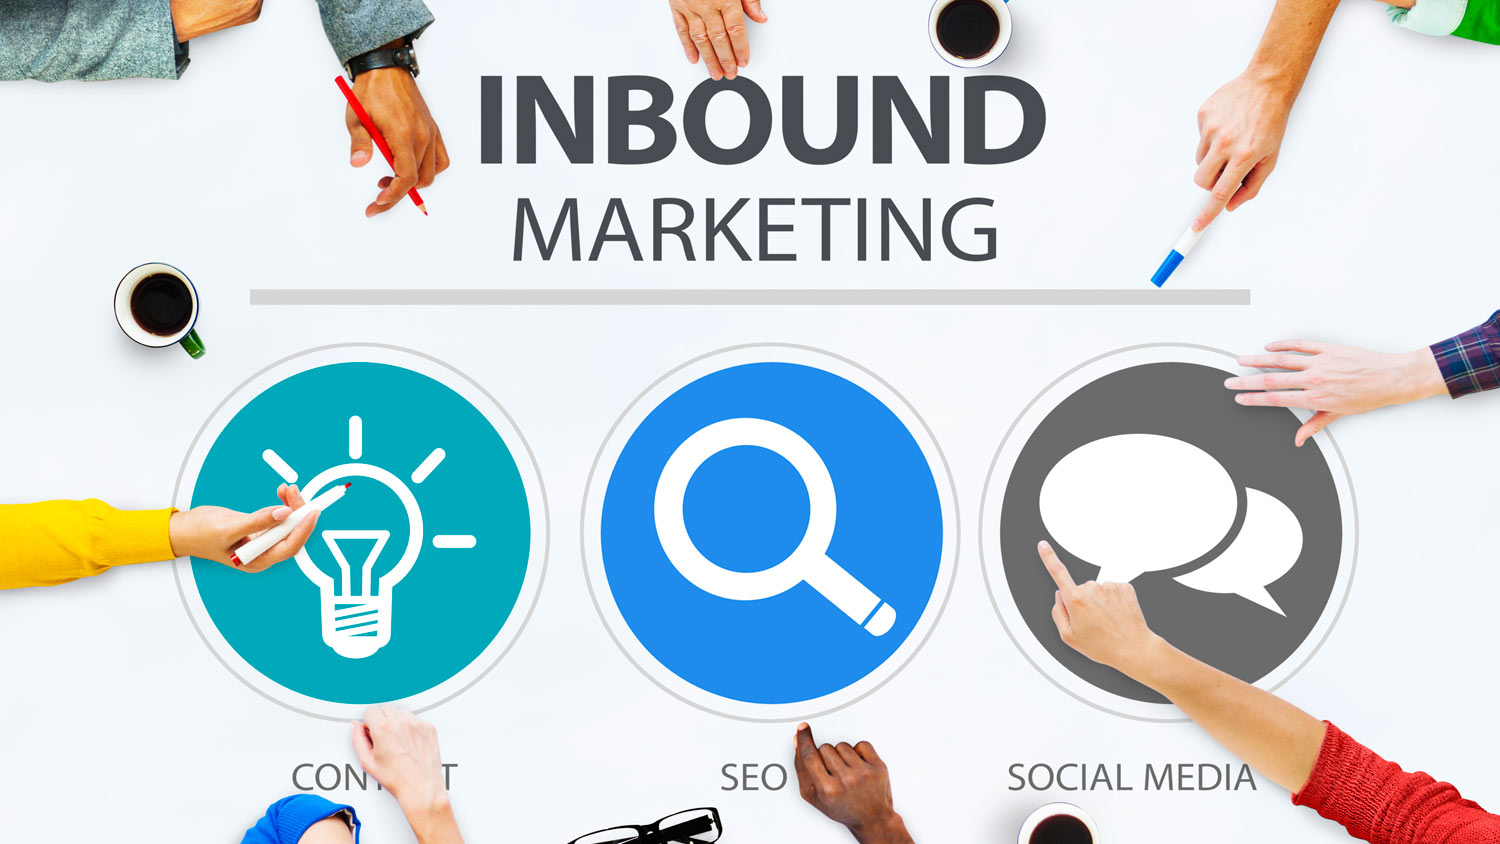 Top 5 reasons Why Inbound Marketing Is Better Than Outbound Marketing